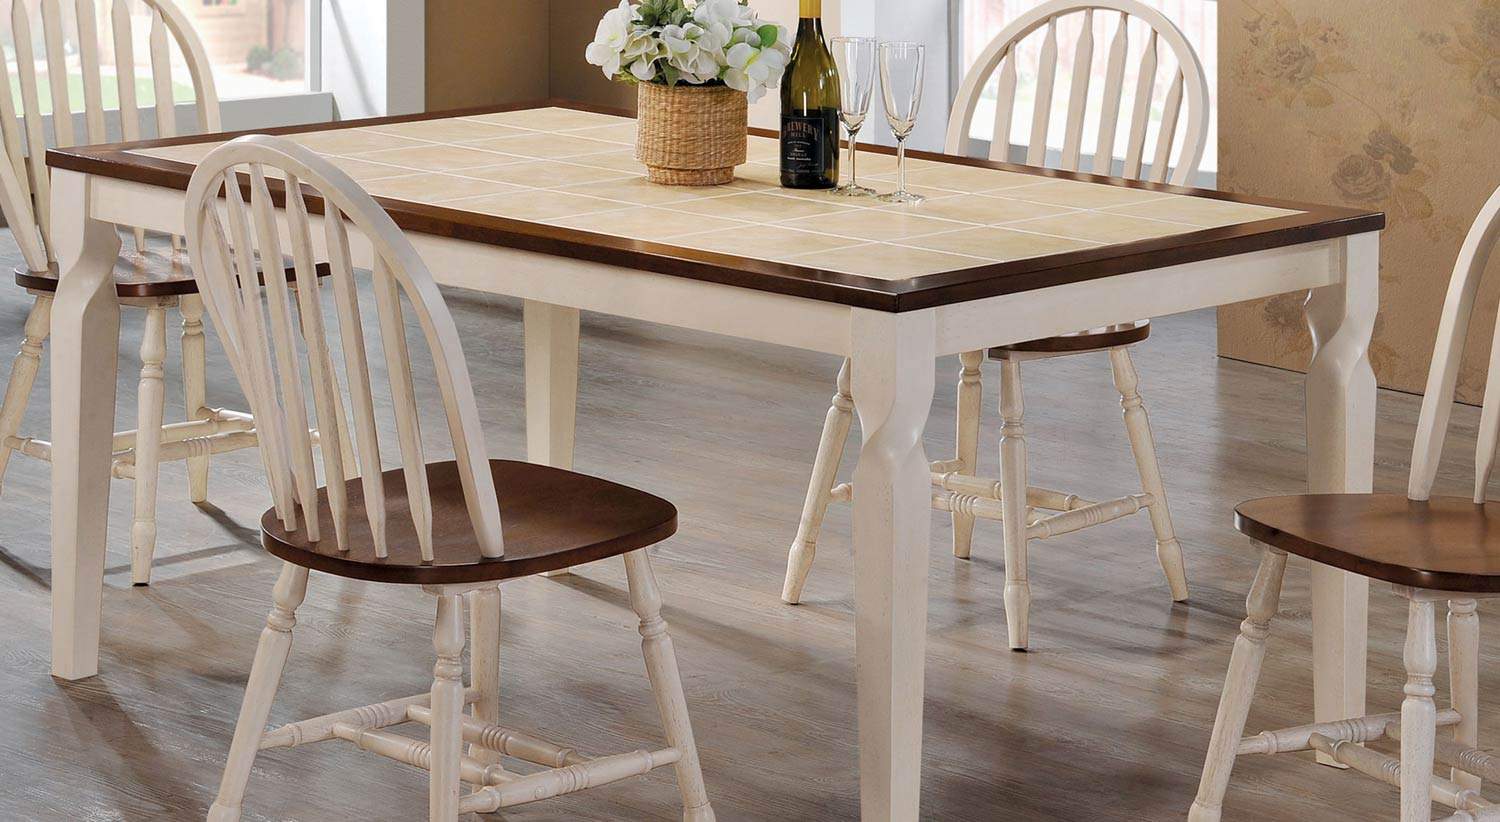 Coaster Bradley Dining Table - Warm Brown/Antique Beige